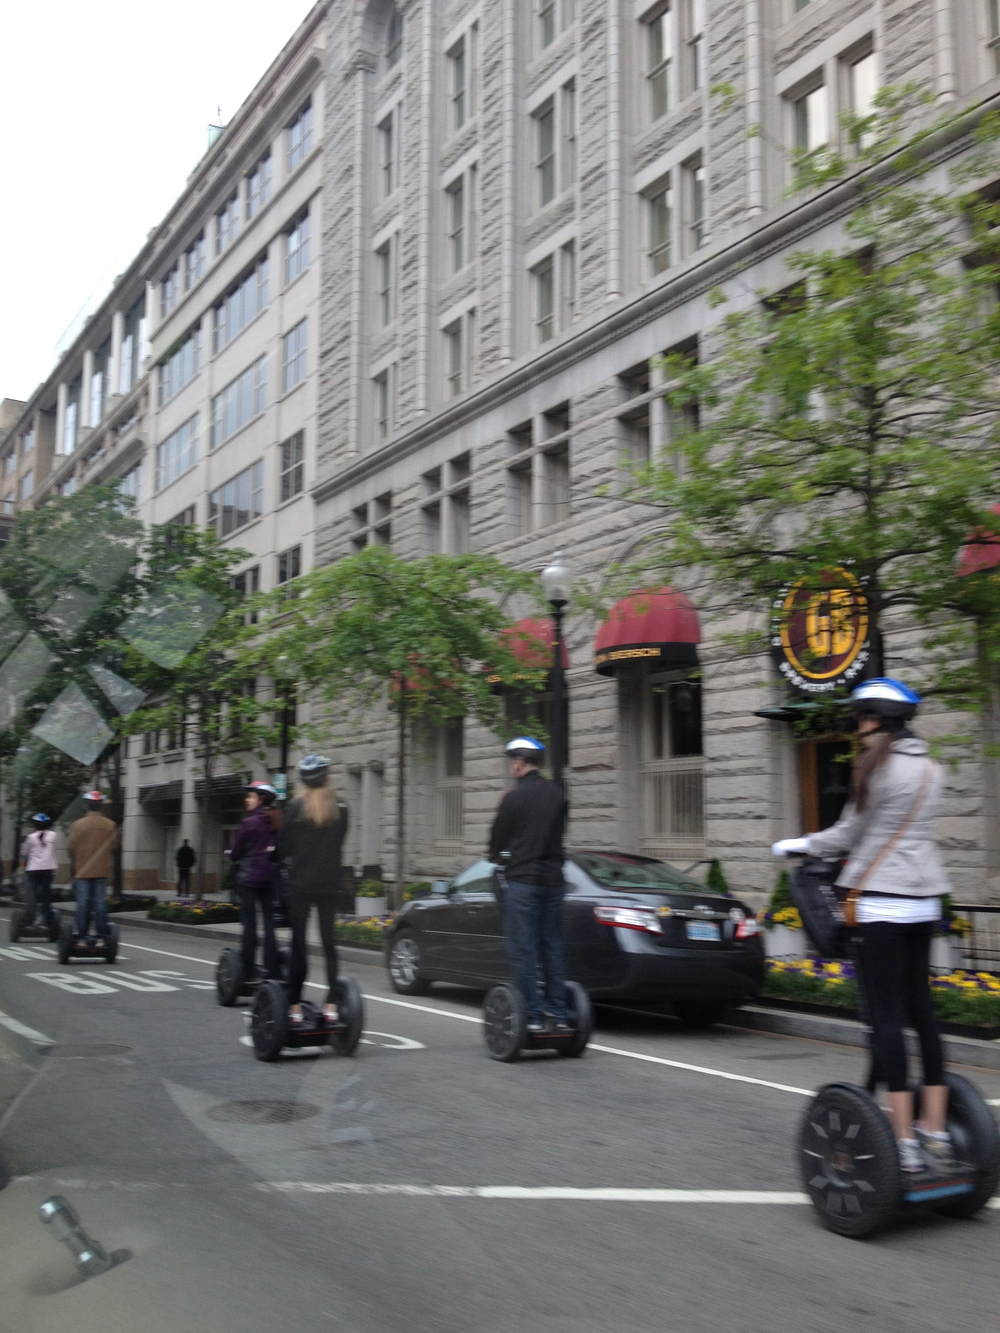 Segway tourists, DC